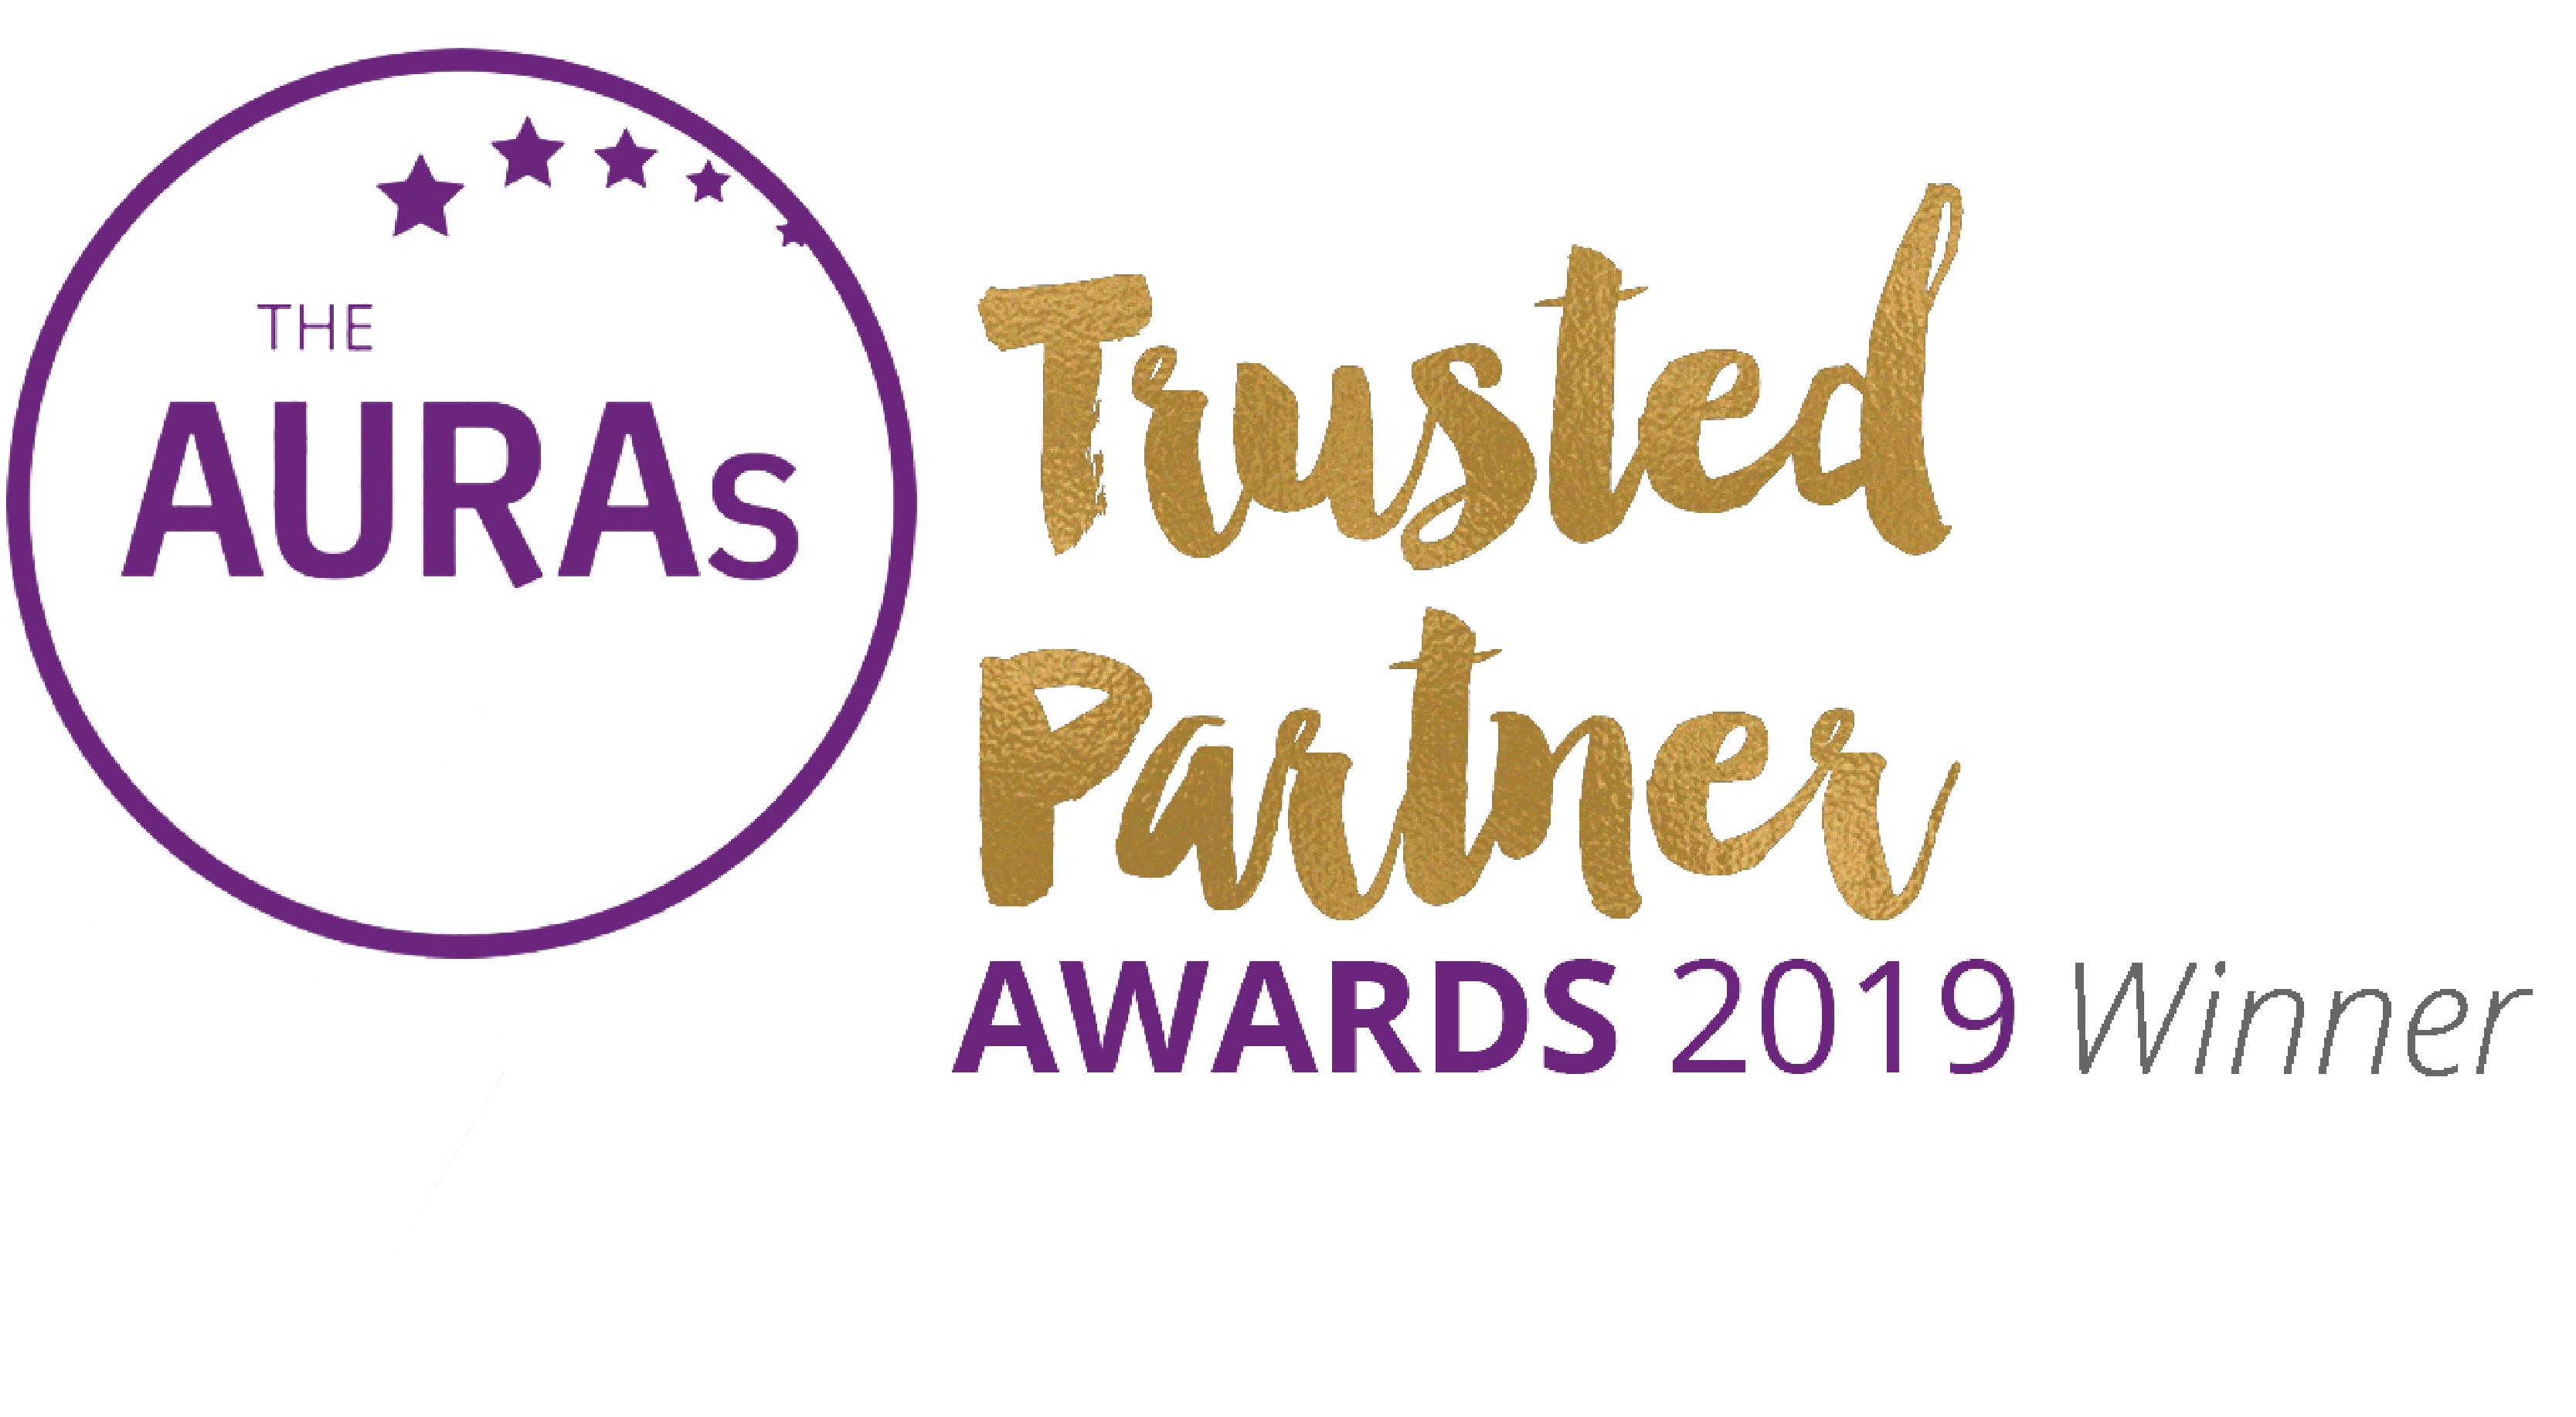 Winner Trusted Partner award 2019 at the AURA awards 2019 (Populus)